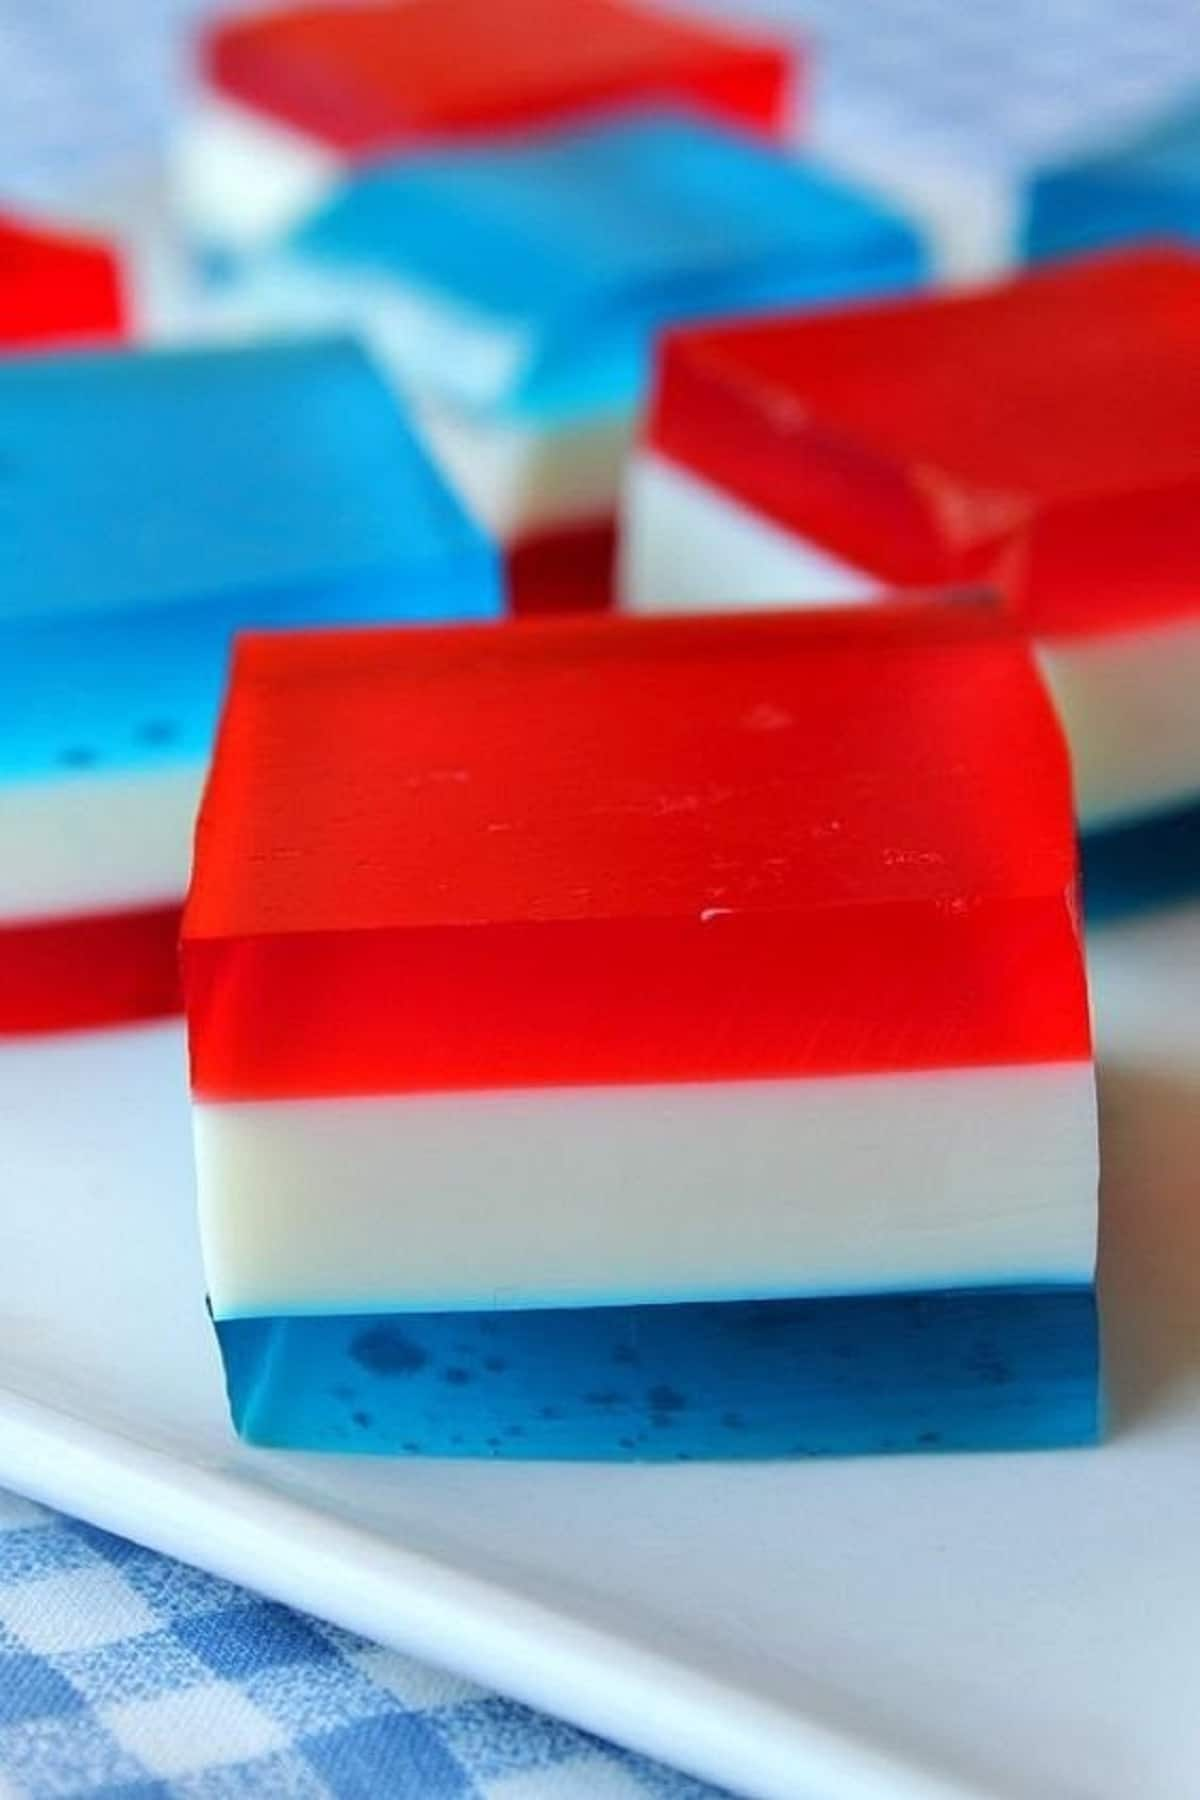 Layered red white and blue jello squares on white platter on blue checked napkin